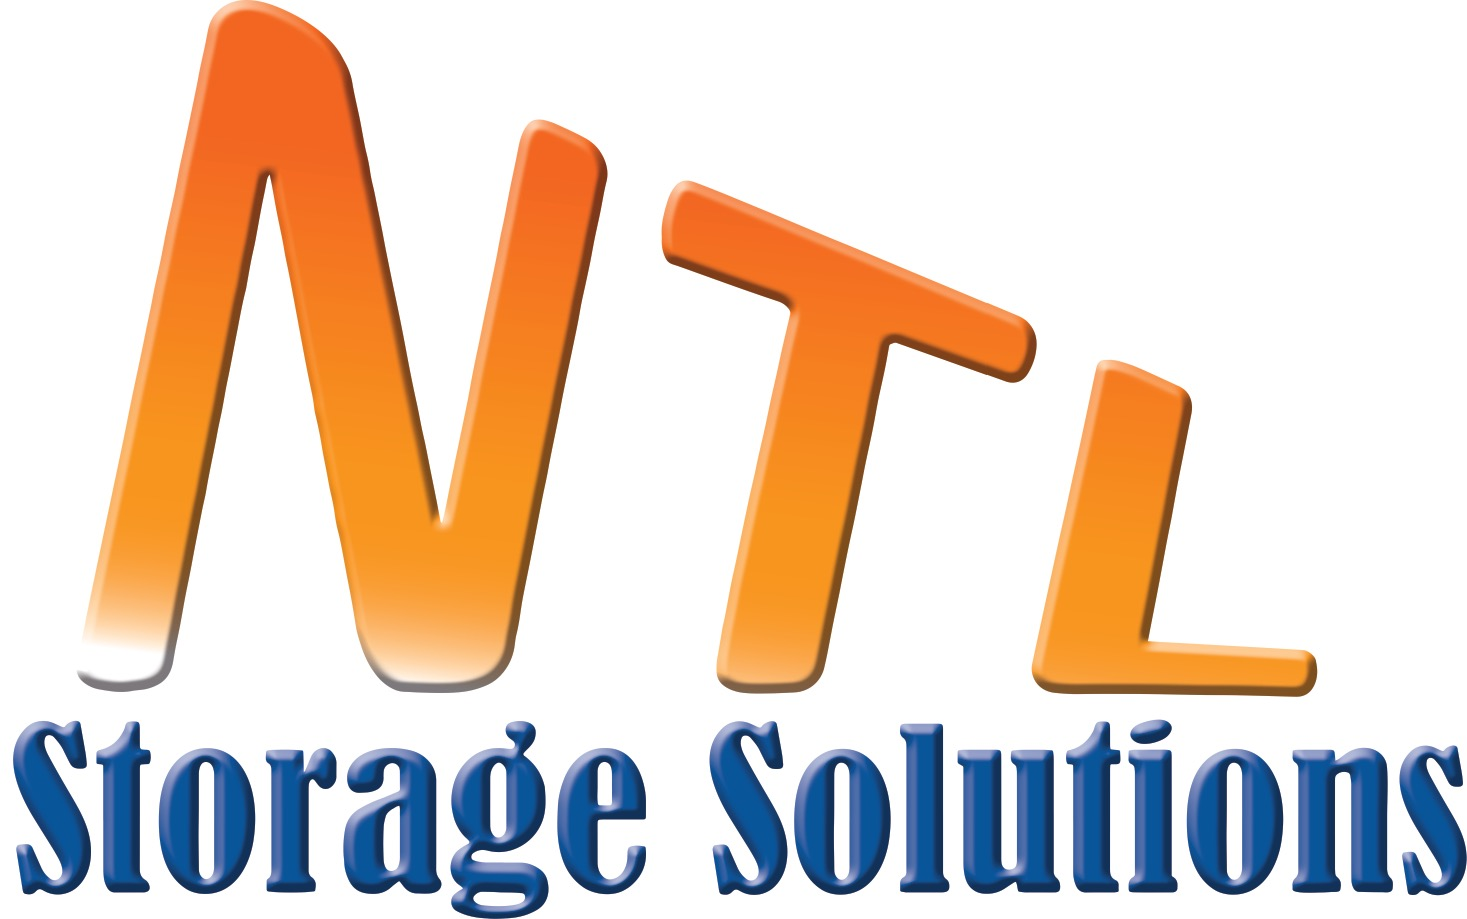 NTL STORAGE SOLUTIONS PTE. LTD.